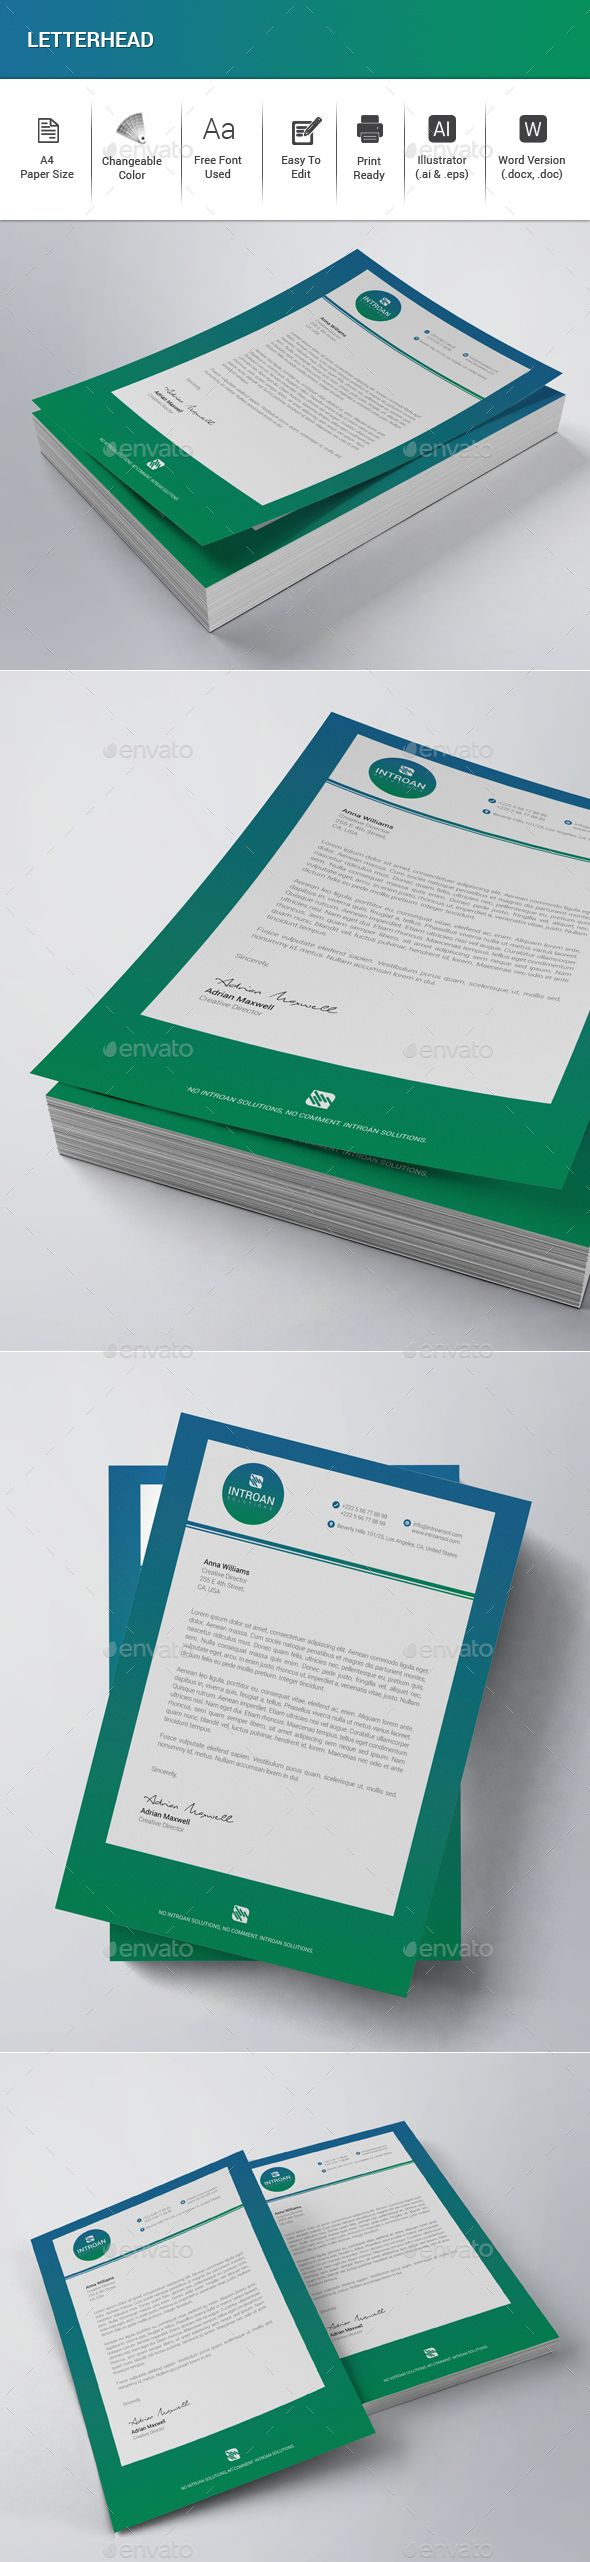 Business Letter Templates Free Download%0A Letterhead